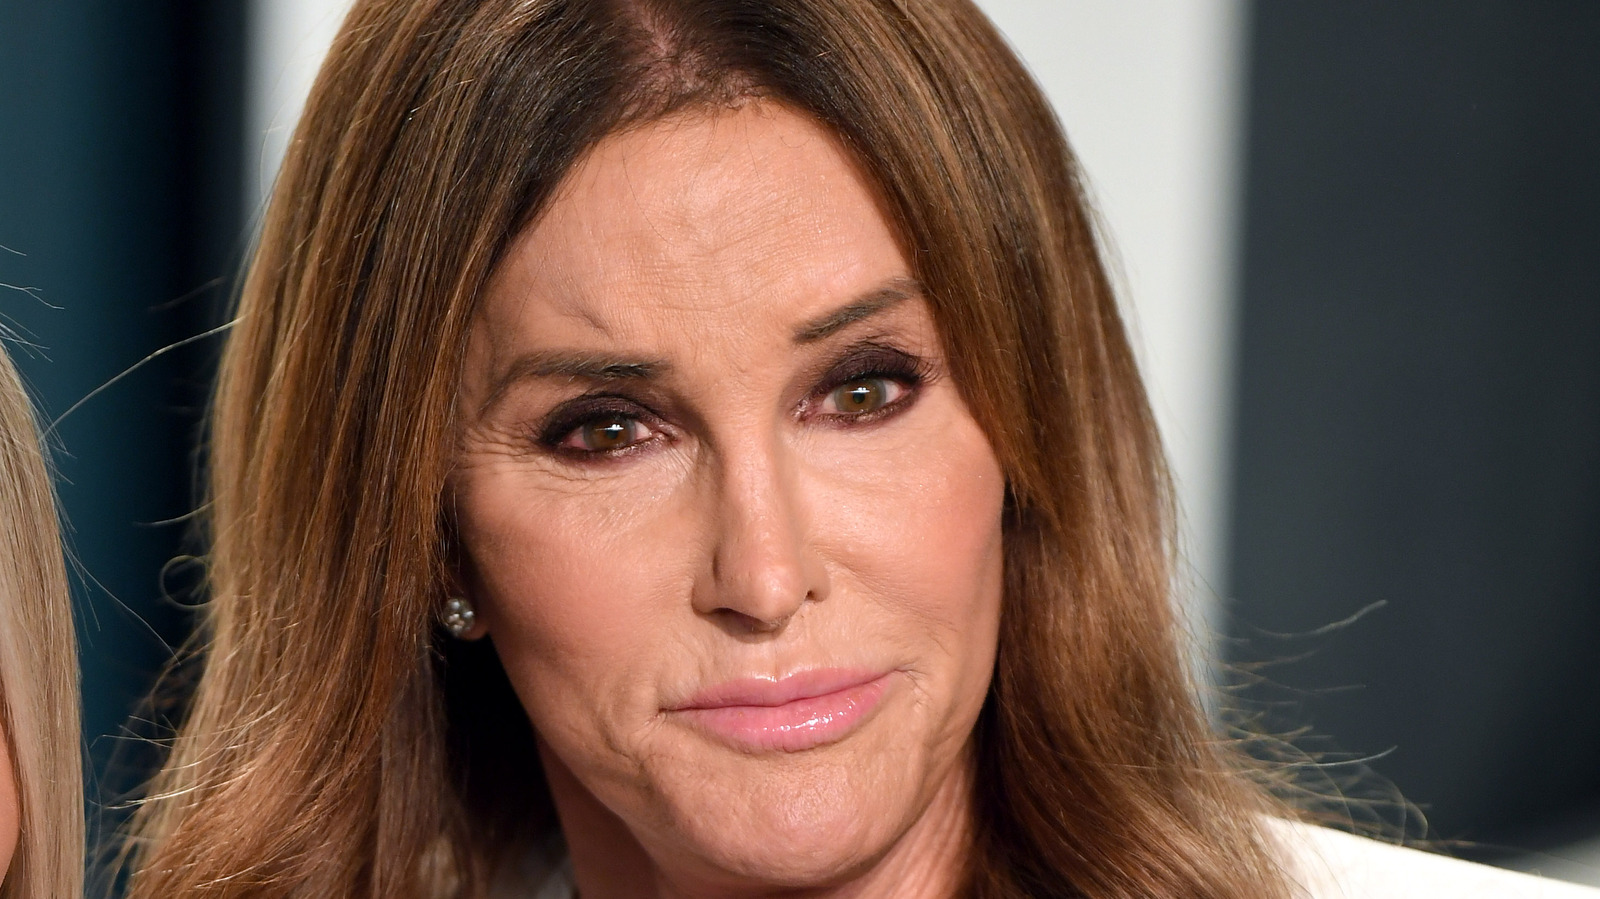 What Brody Jenner 's Relationship With Caitlyn Jenner Is Like Today